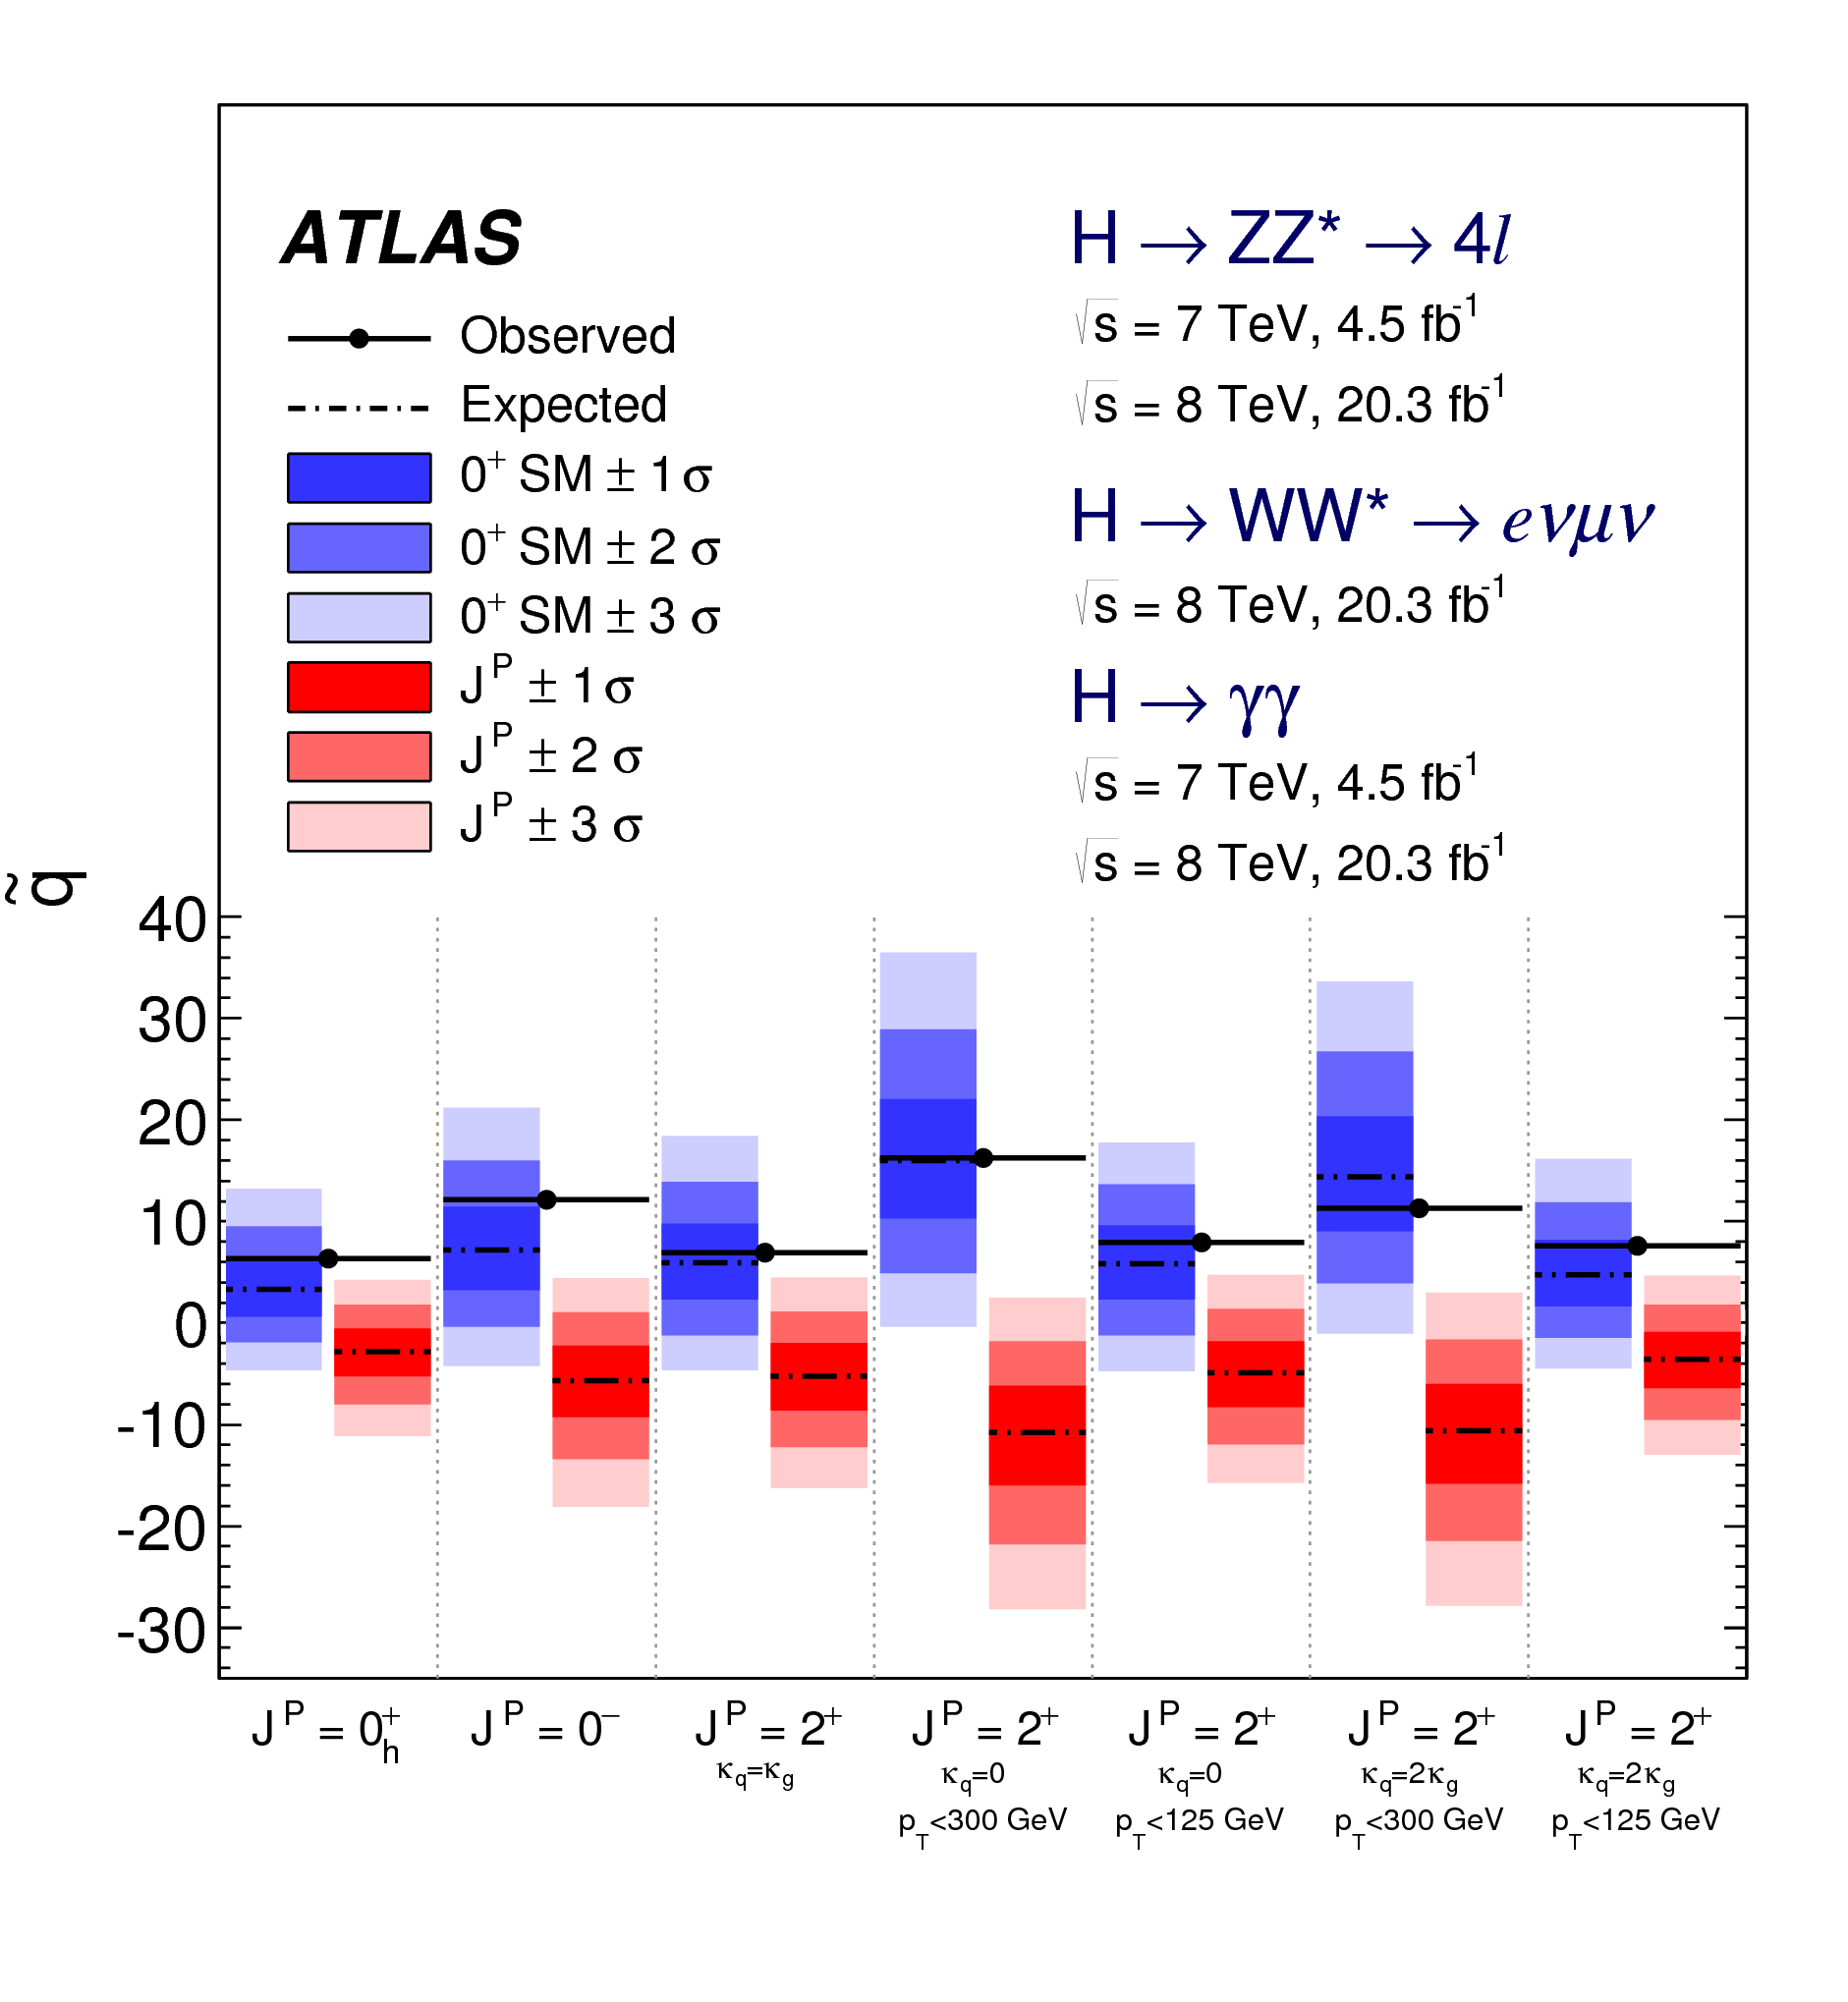 https://atlas.web.cern.ch/Atlas/GROUPS/PHYSICS/CombinedSummaryPlots/HIGGS/ATLAS_HIGGS2100_SpinCP_Summary/ATLAS_HIGGS2100_SpinCP_Summary.png